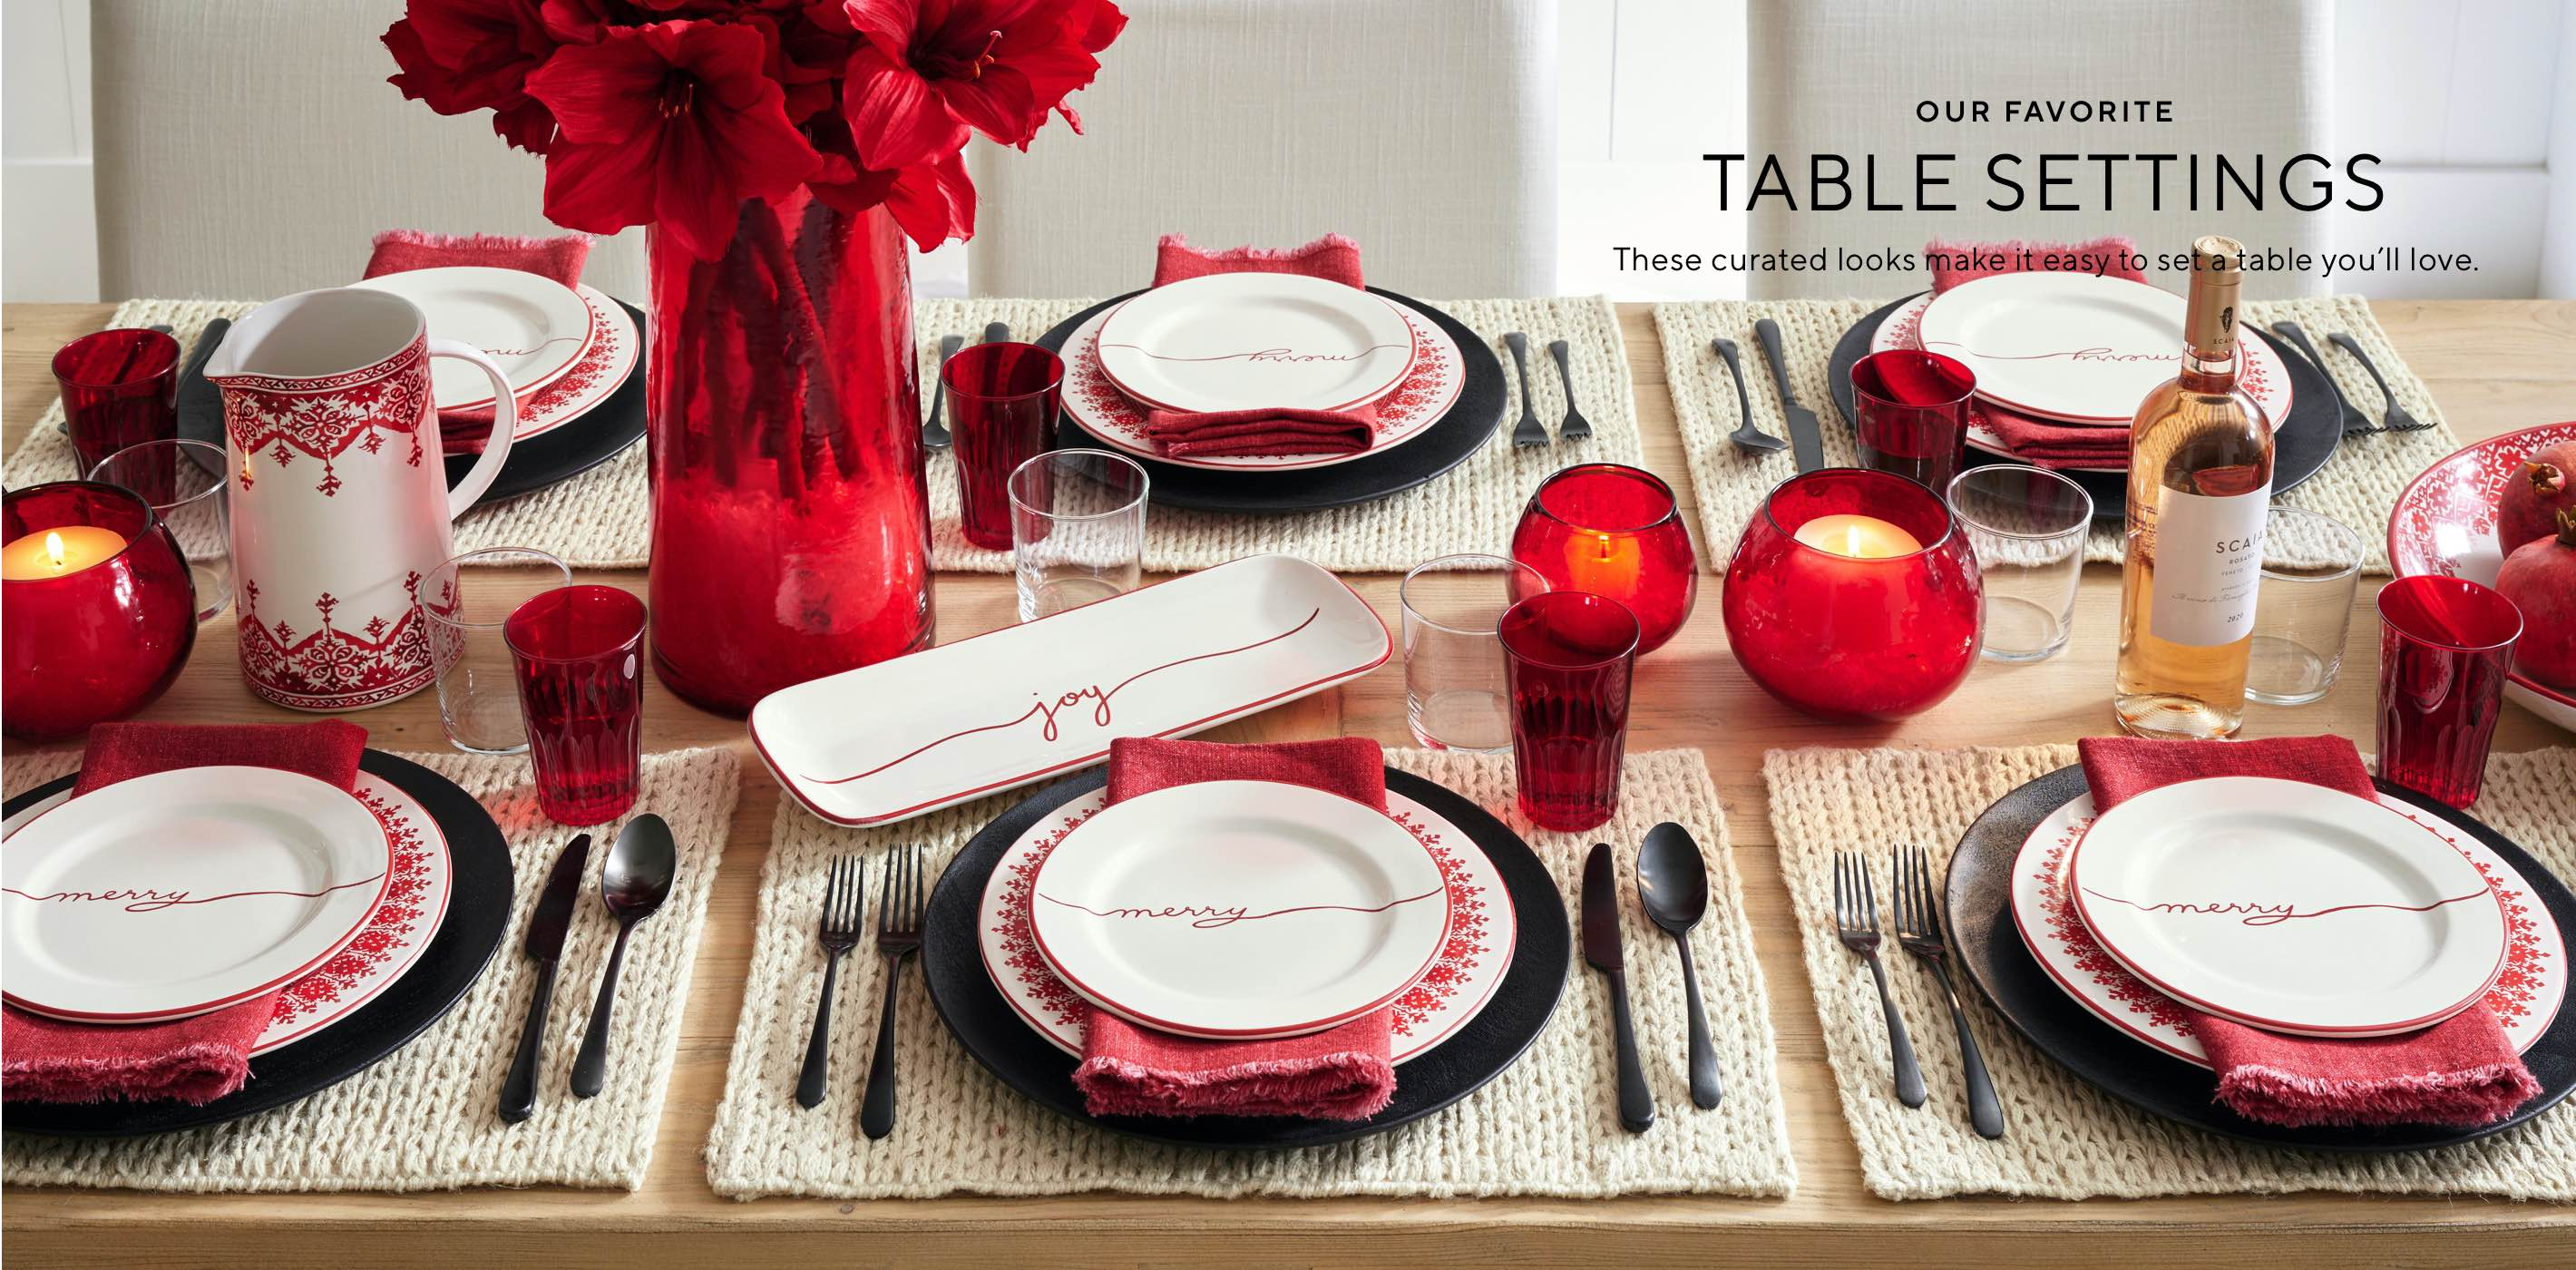 Our Favorite Table Settings